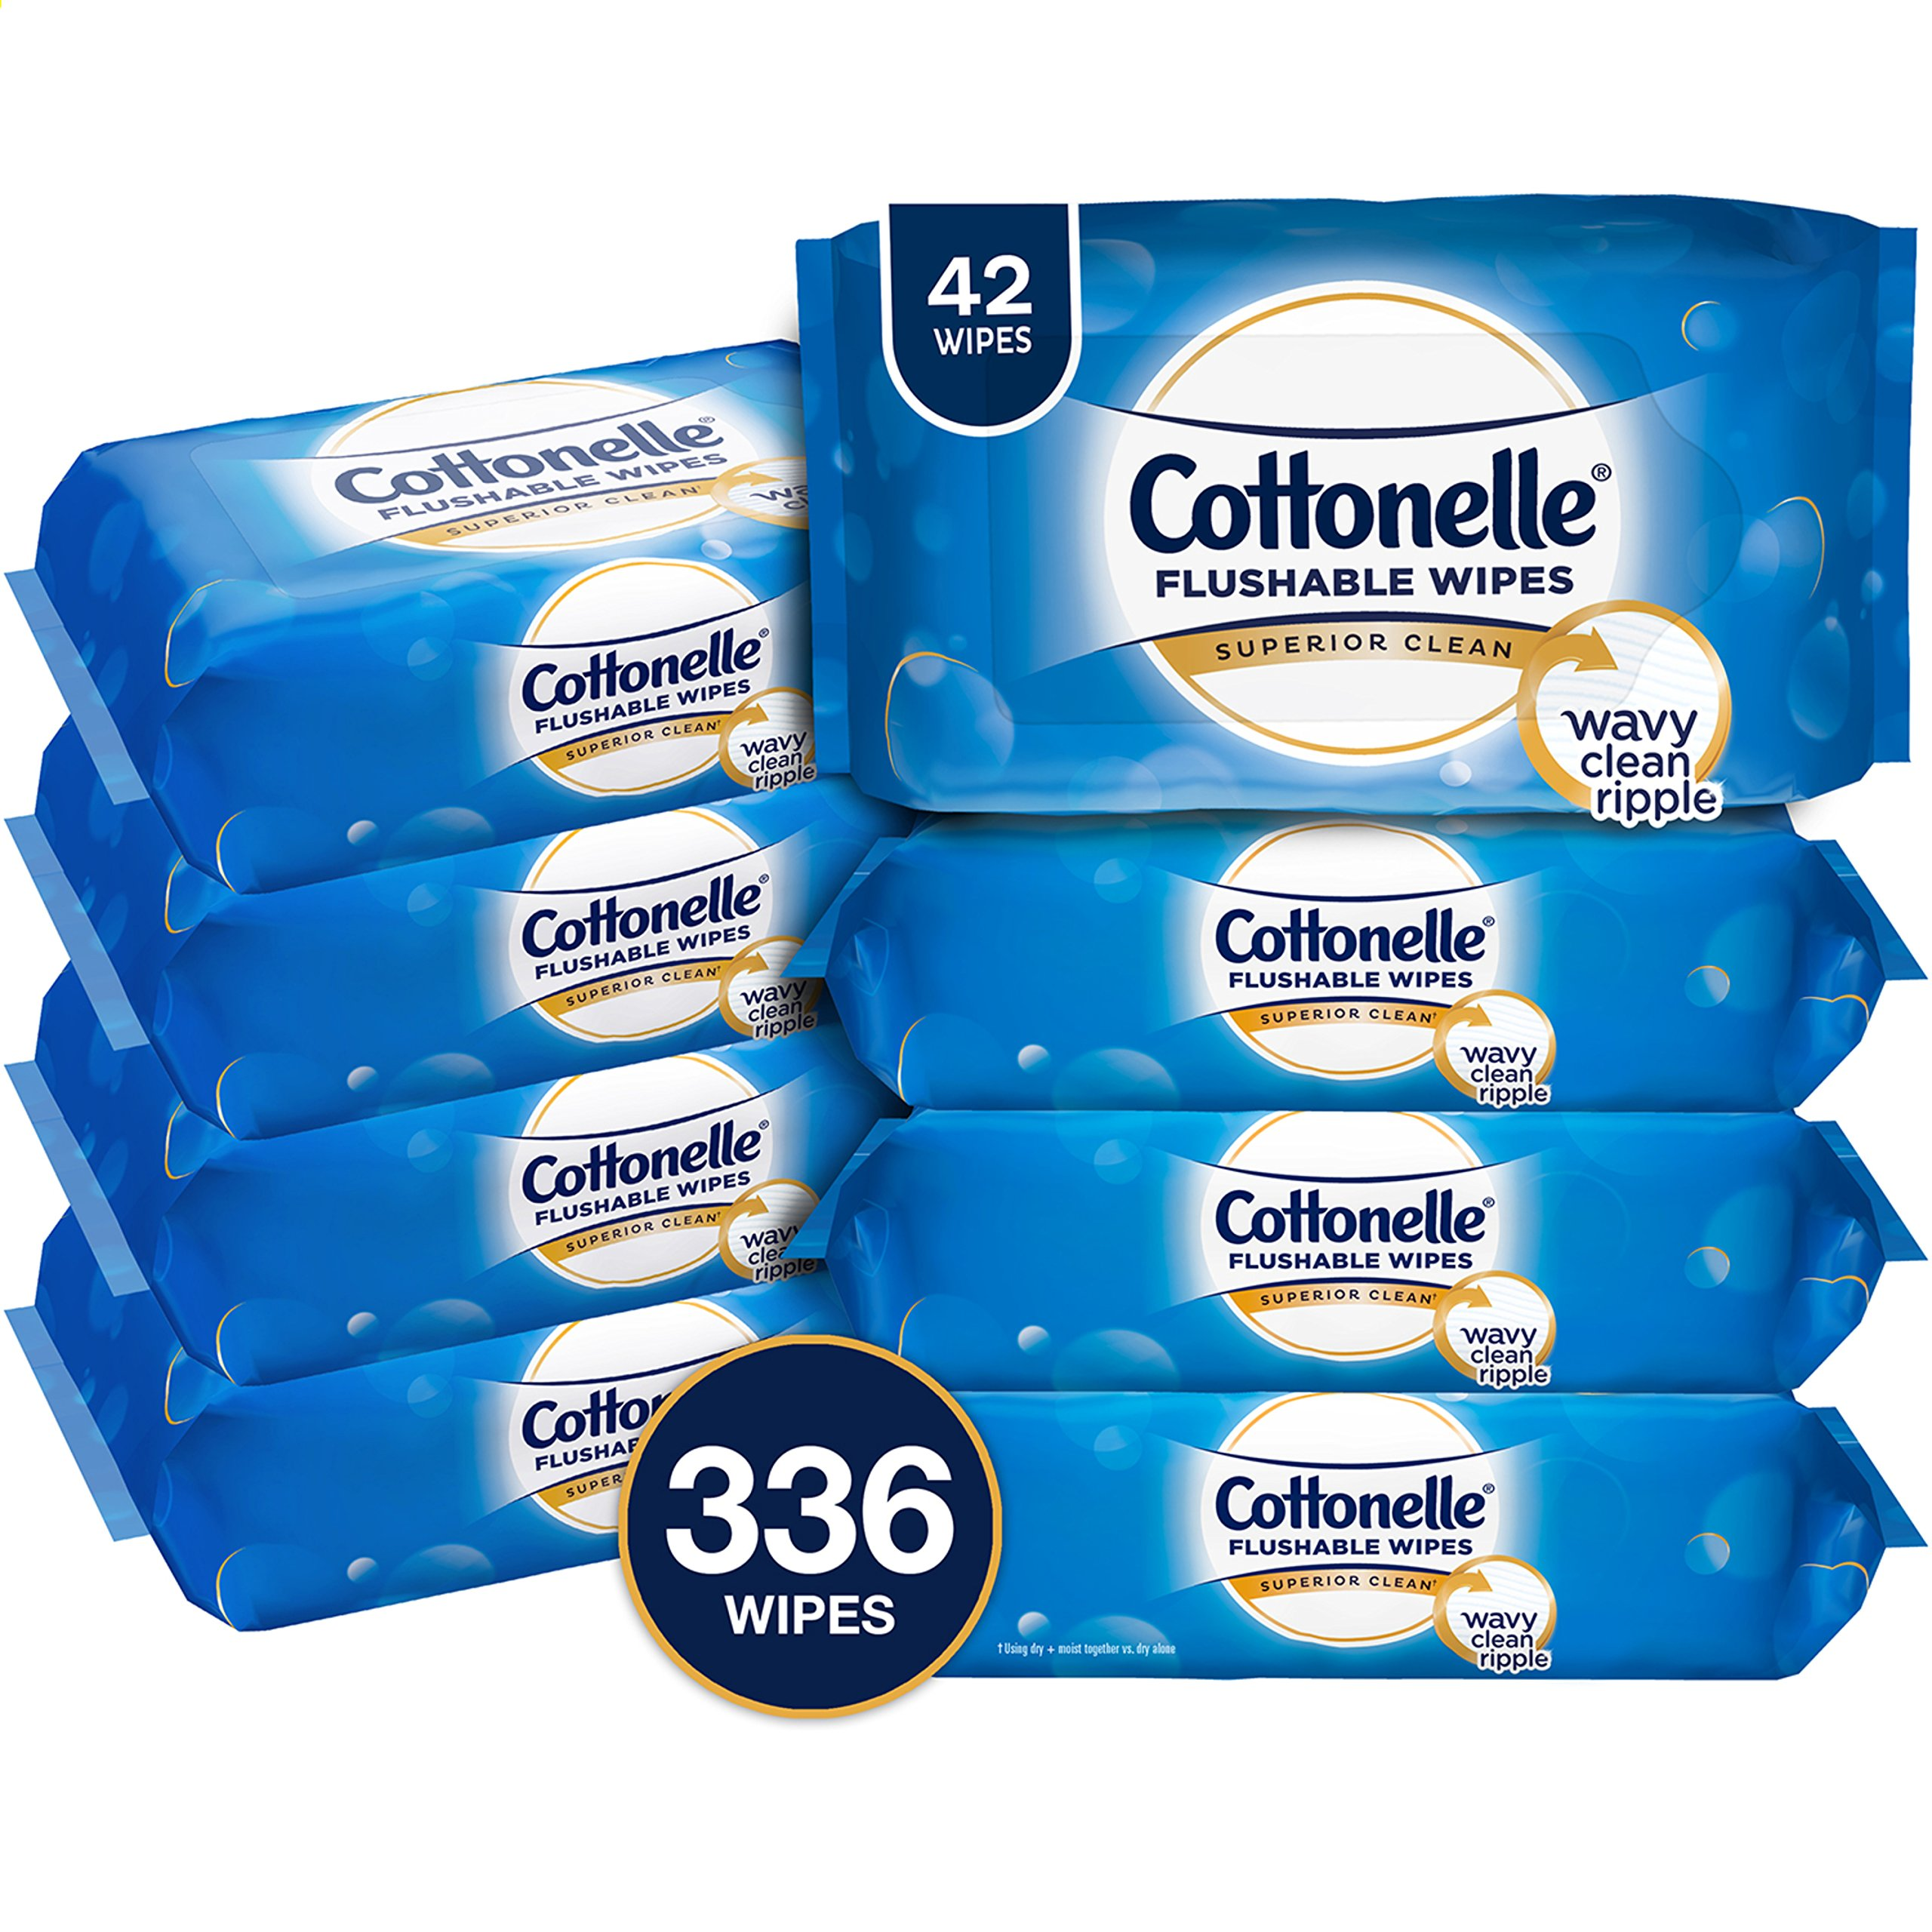 Cottonelle FreshCare Flushable Wipes, 336 Flushable Wet Wipes (Eight 42-Count Resealable Soft Packs) (Packaging May Vary), Lightly Scented by Cottonelle (Image #1)